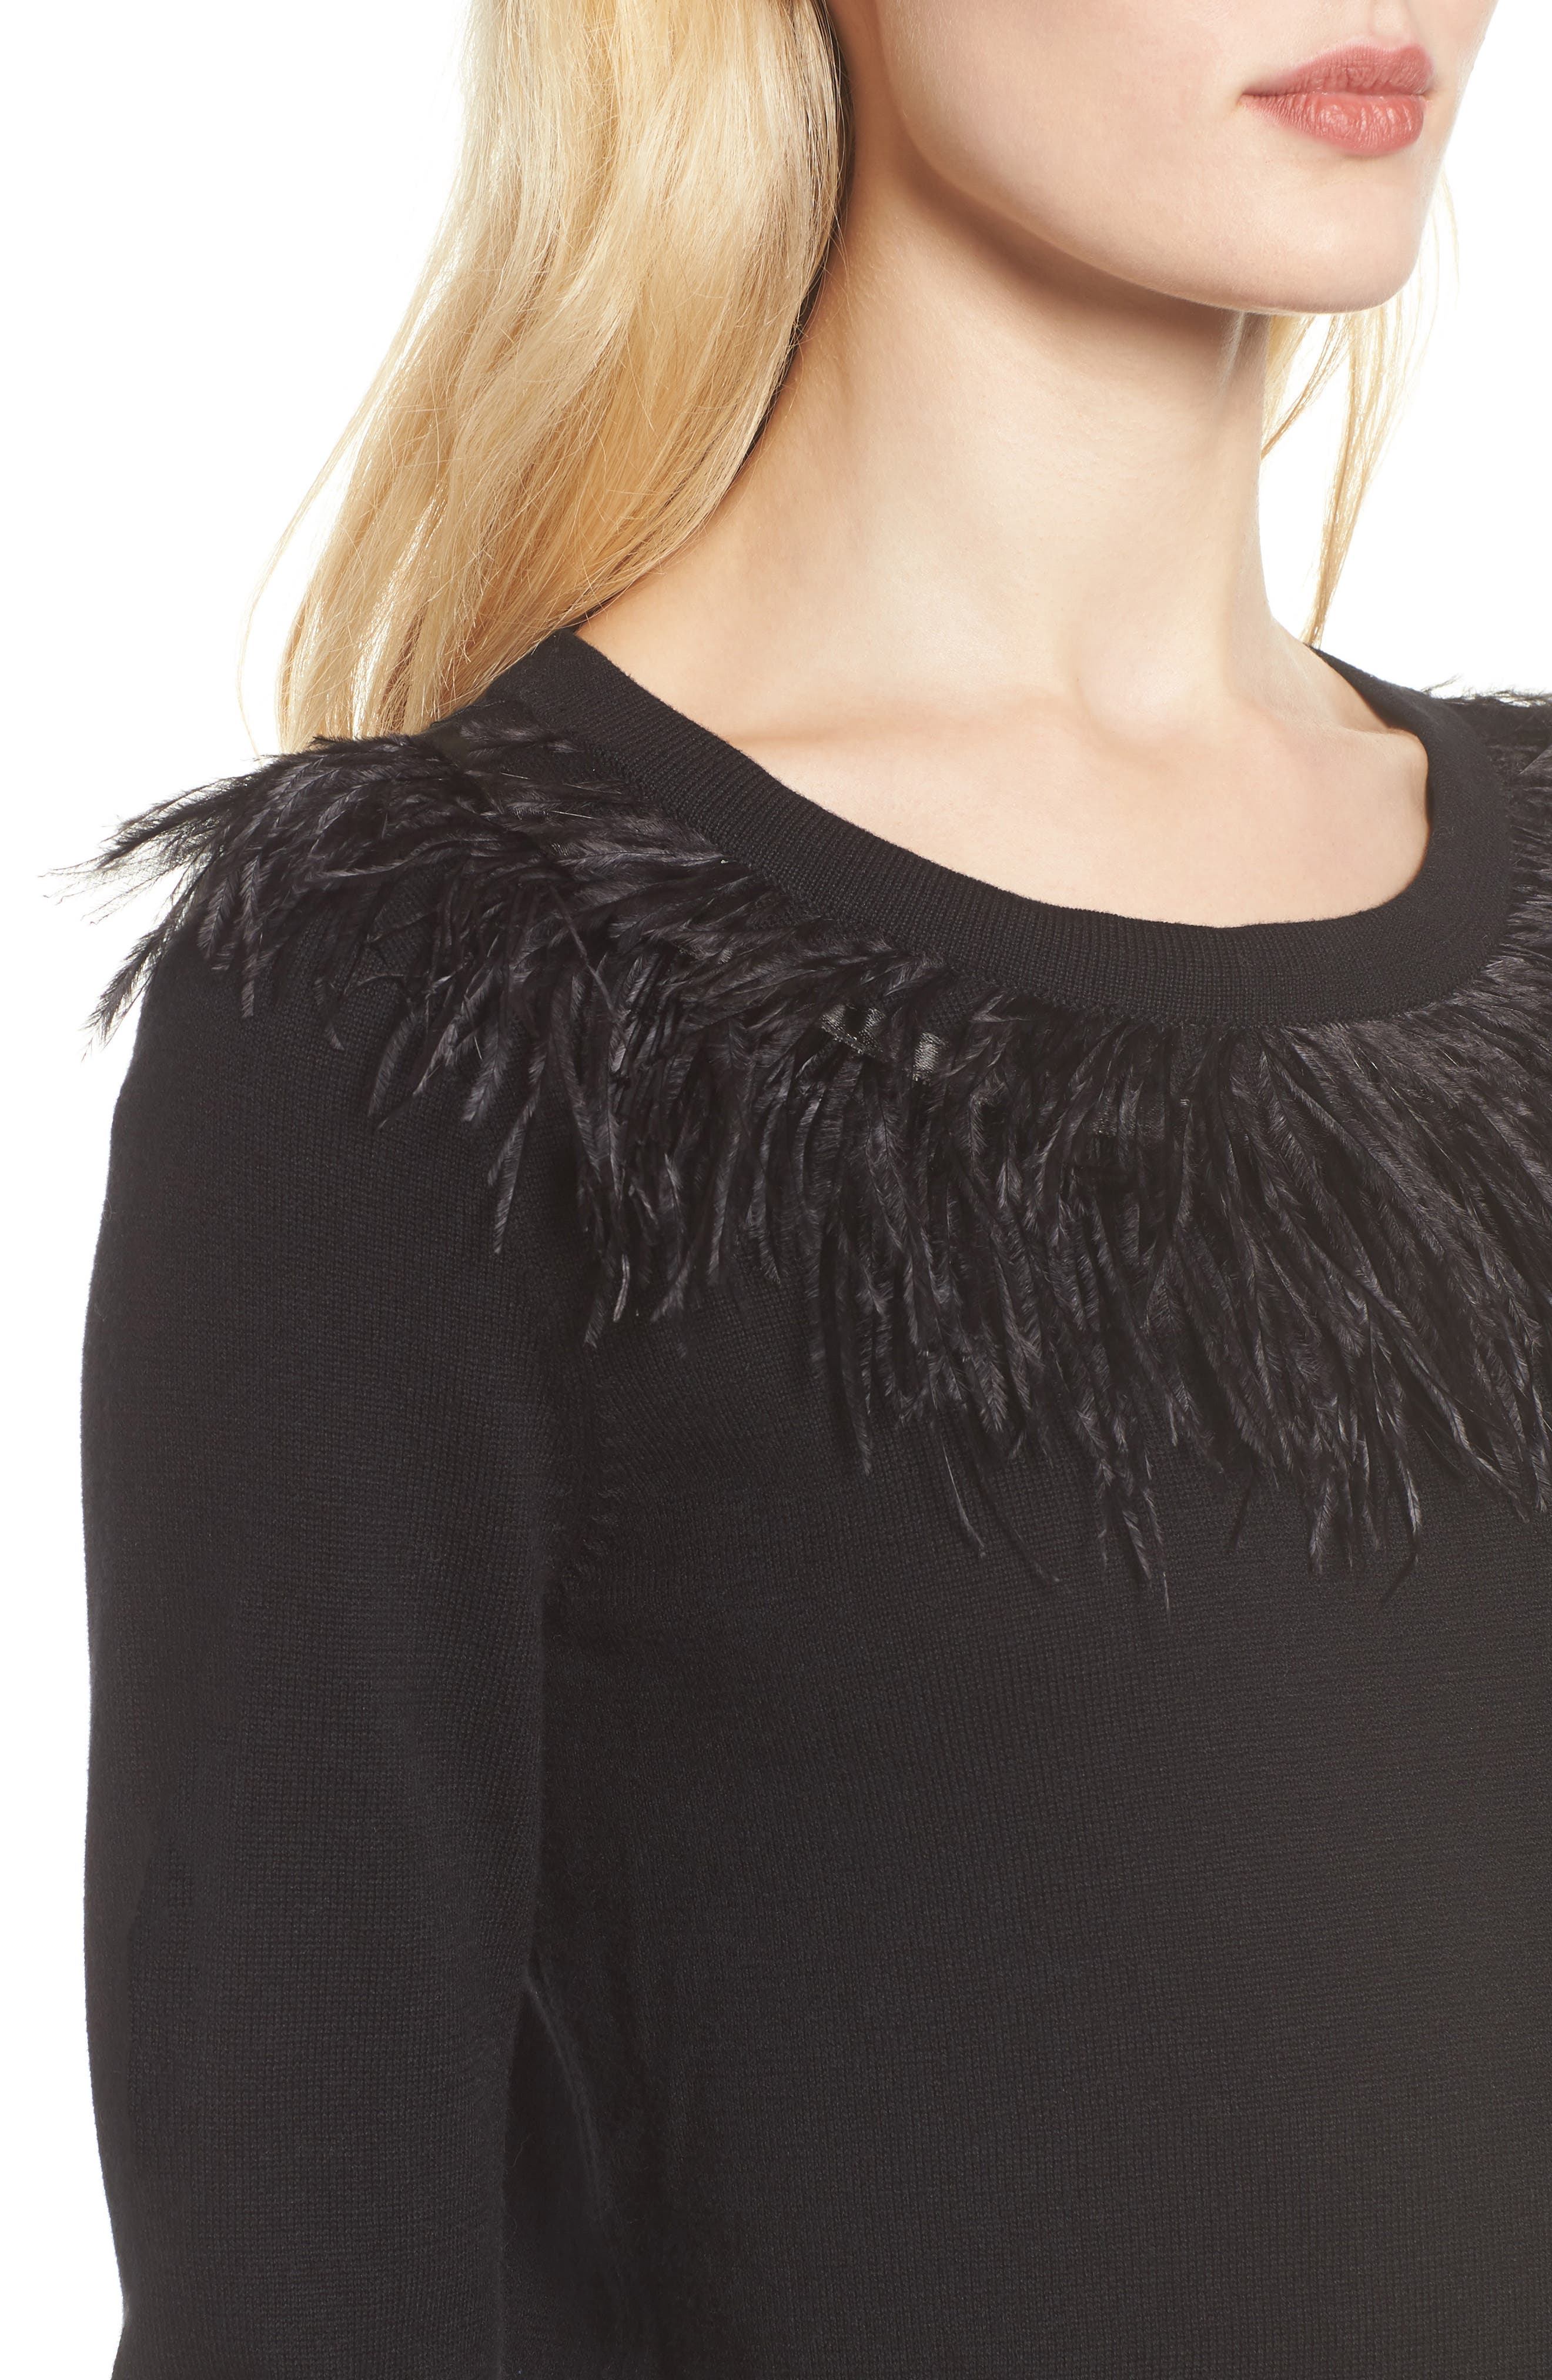 VINCE CAMUTO,                             Feather Collar Sweater,                             Alternate thumbnail 4, color,                             006